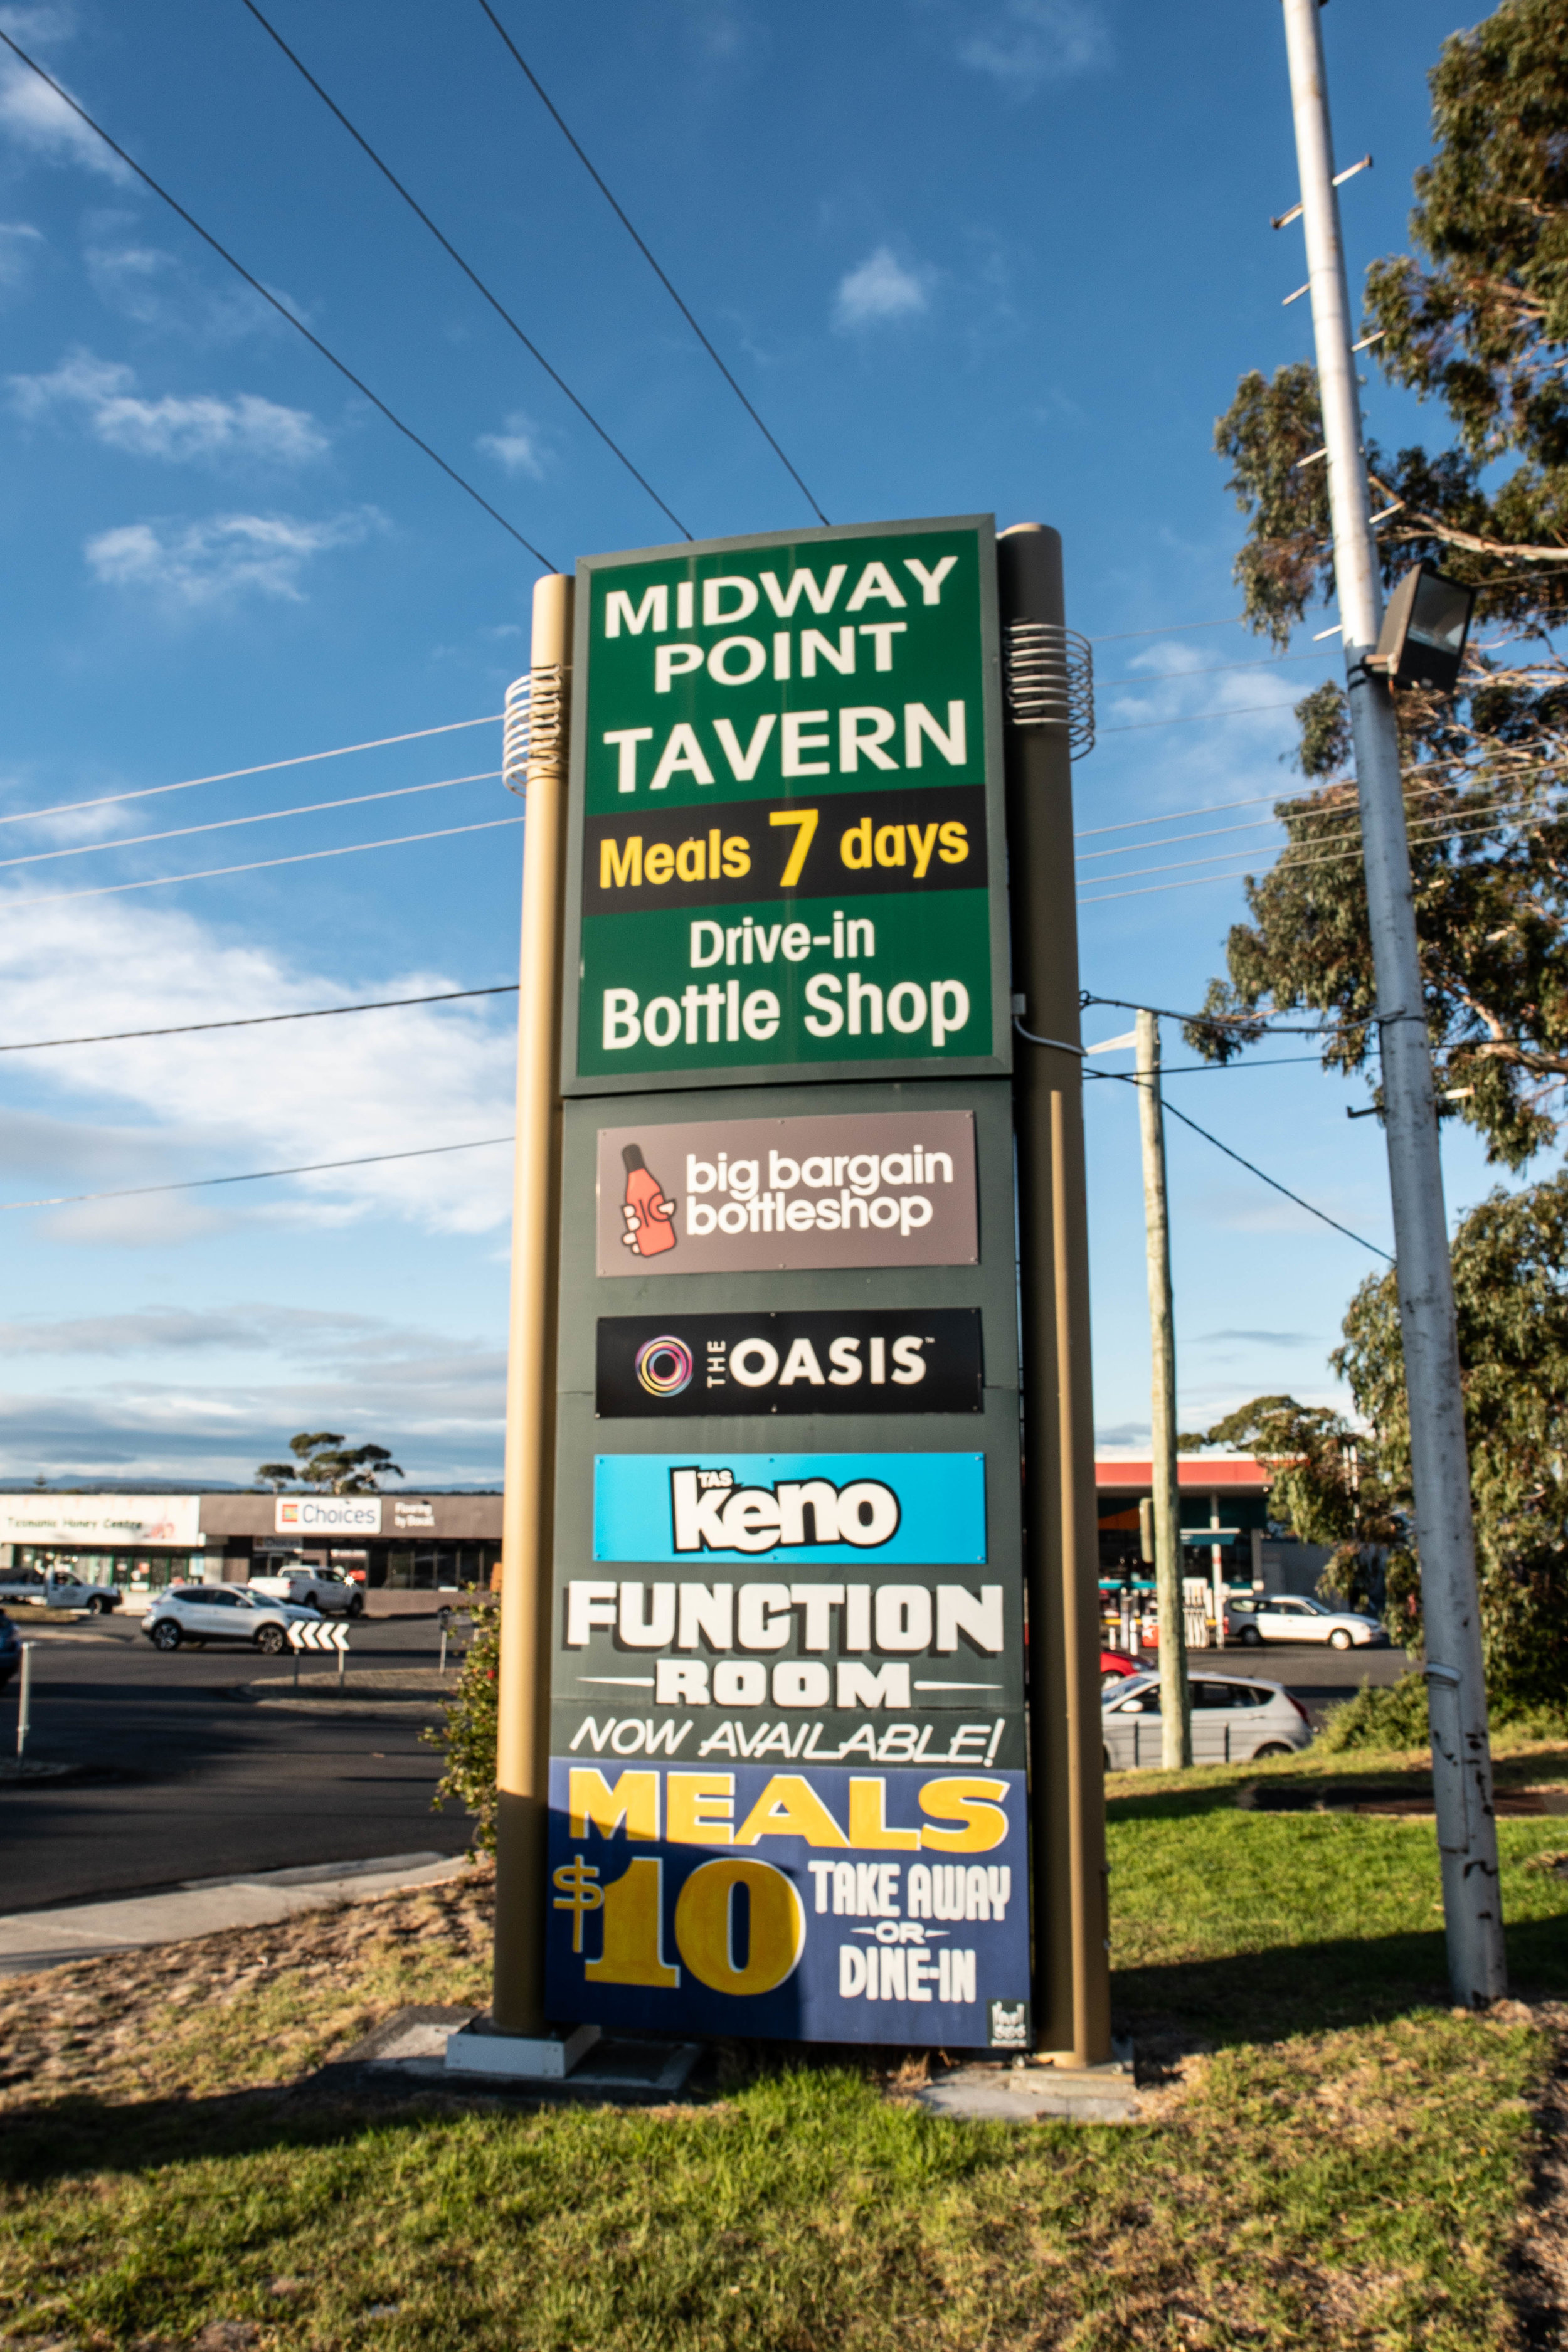 Midway Tavern (1 of 31).jpg